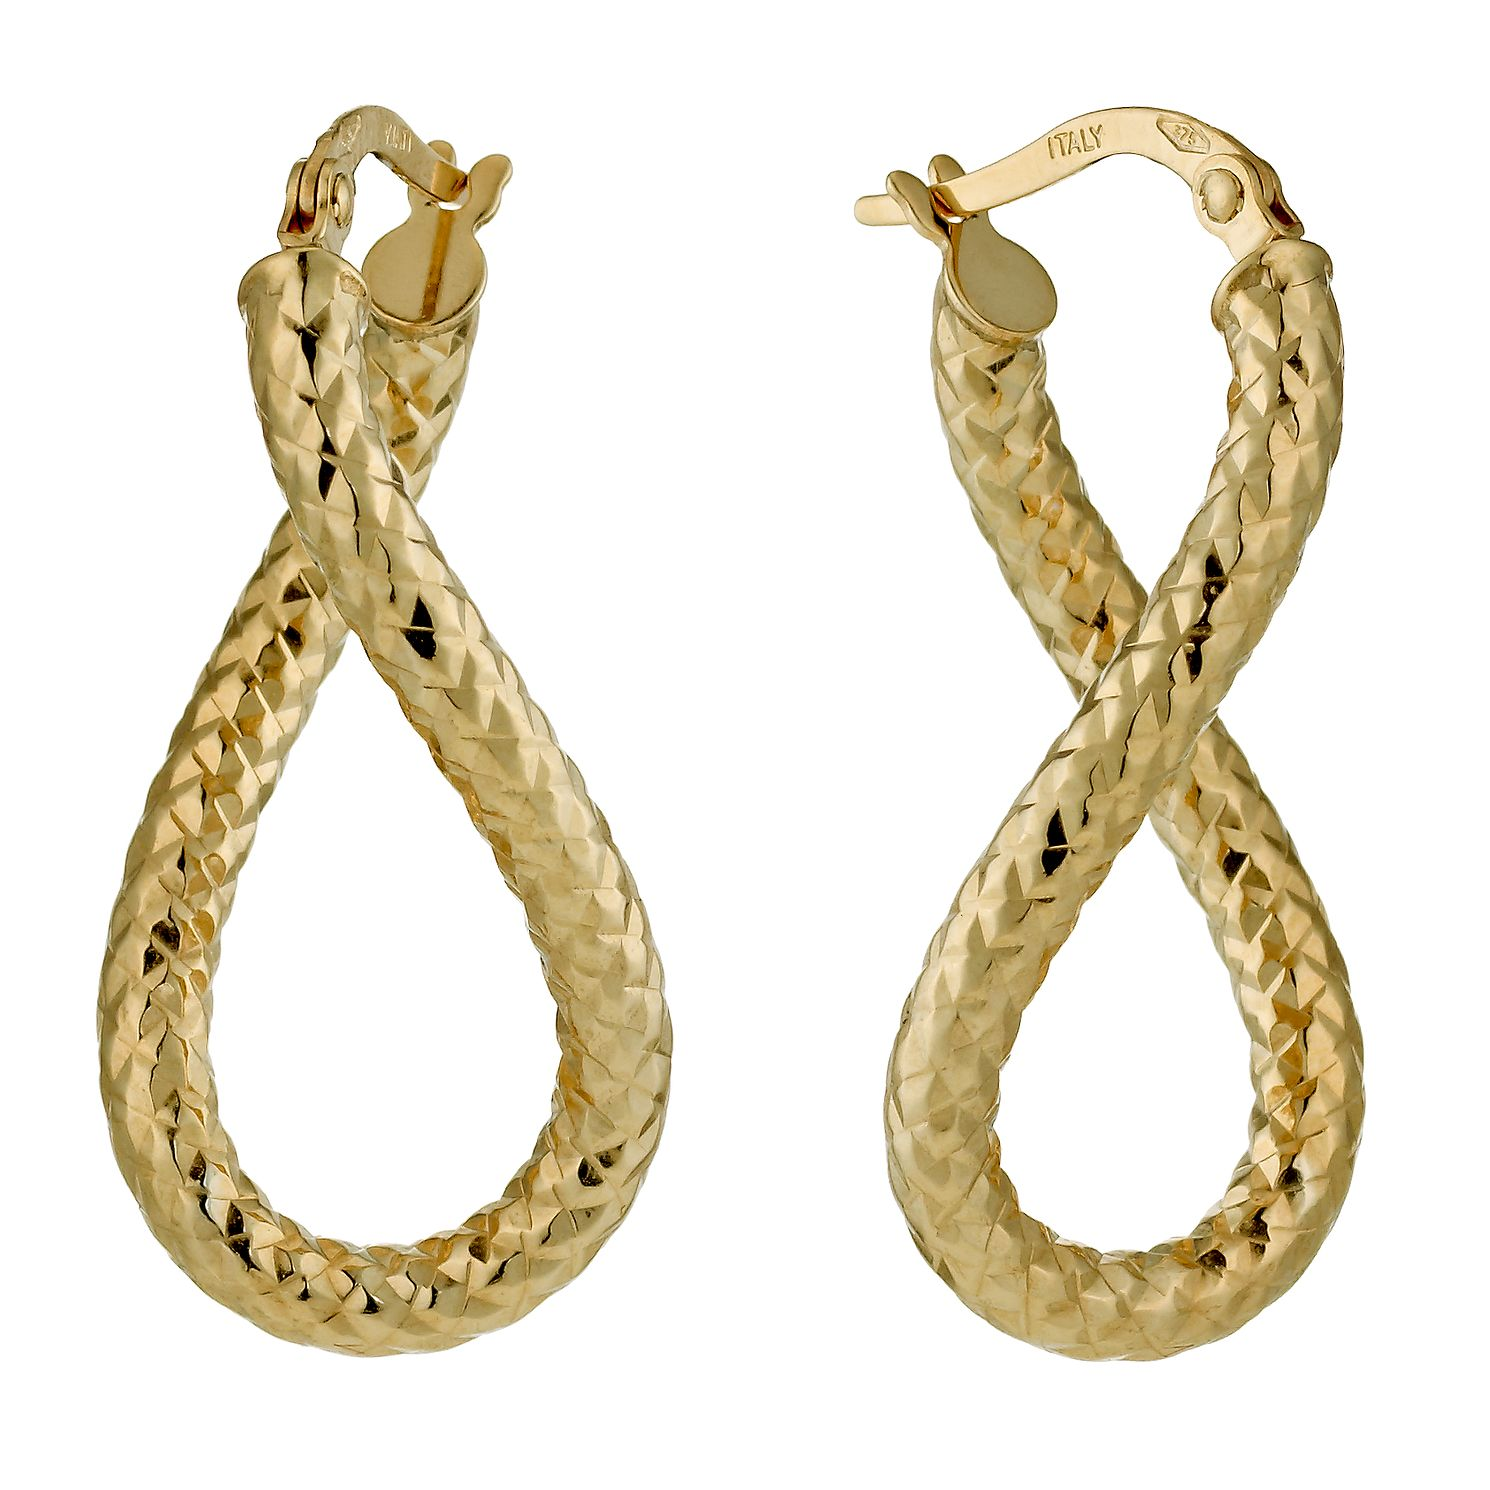 9ct Yellow Gold Oval Twisted Hoop Earrings - Product number 1325965